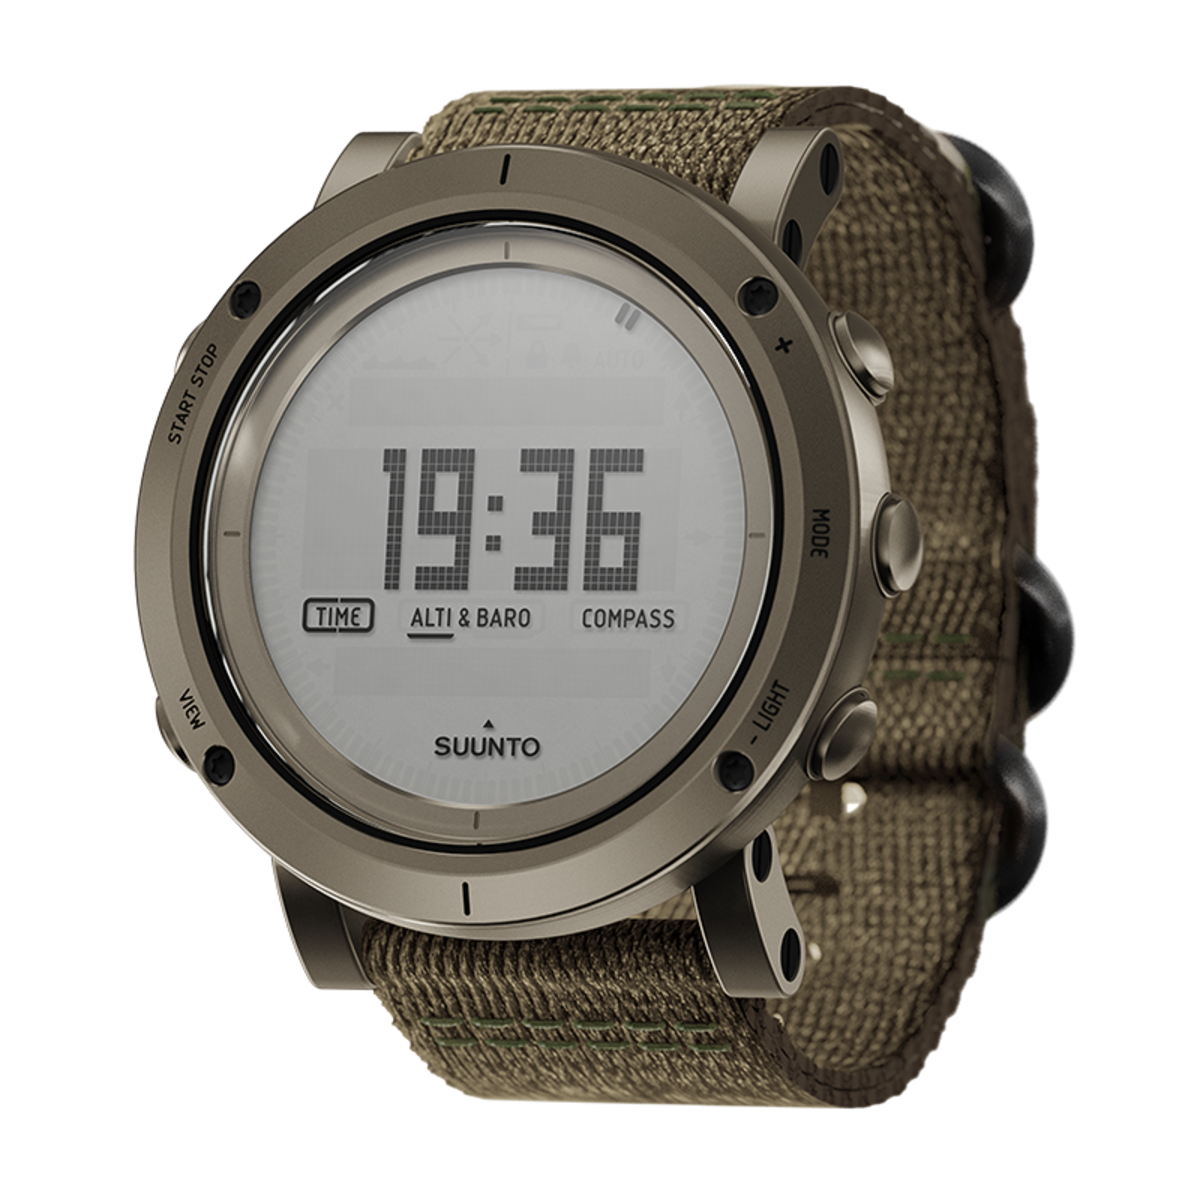 Photos: Suunto